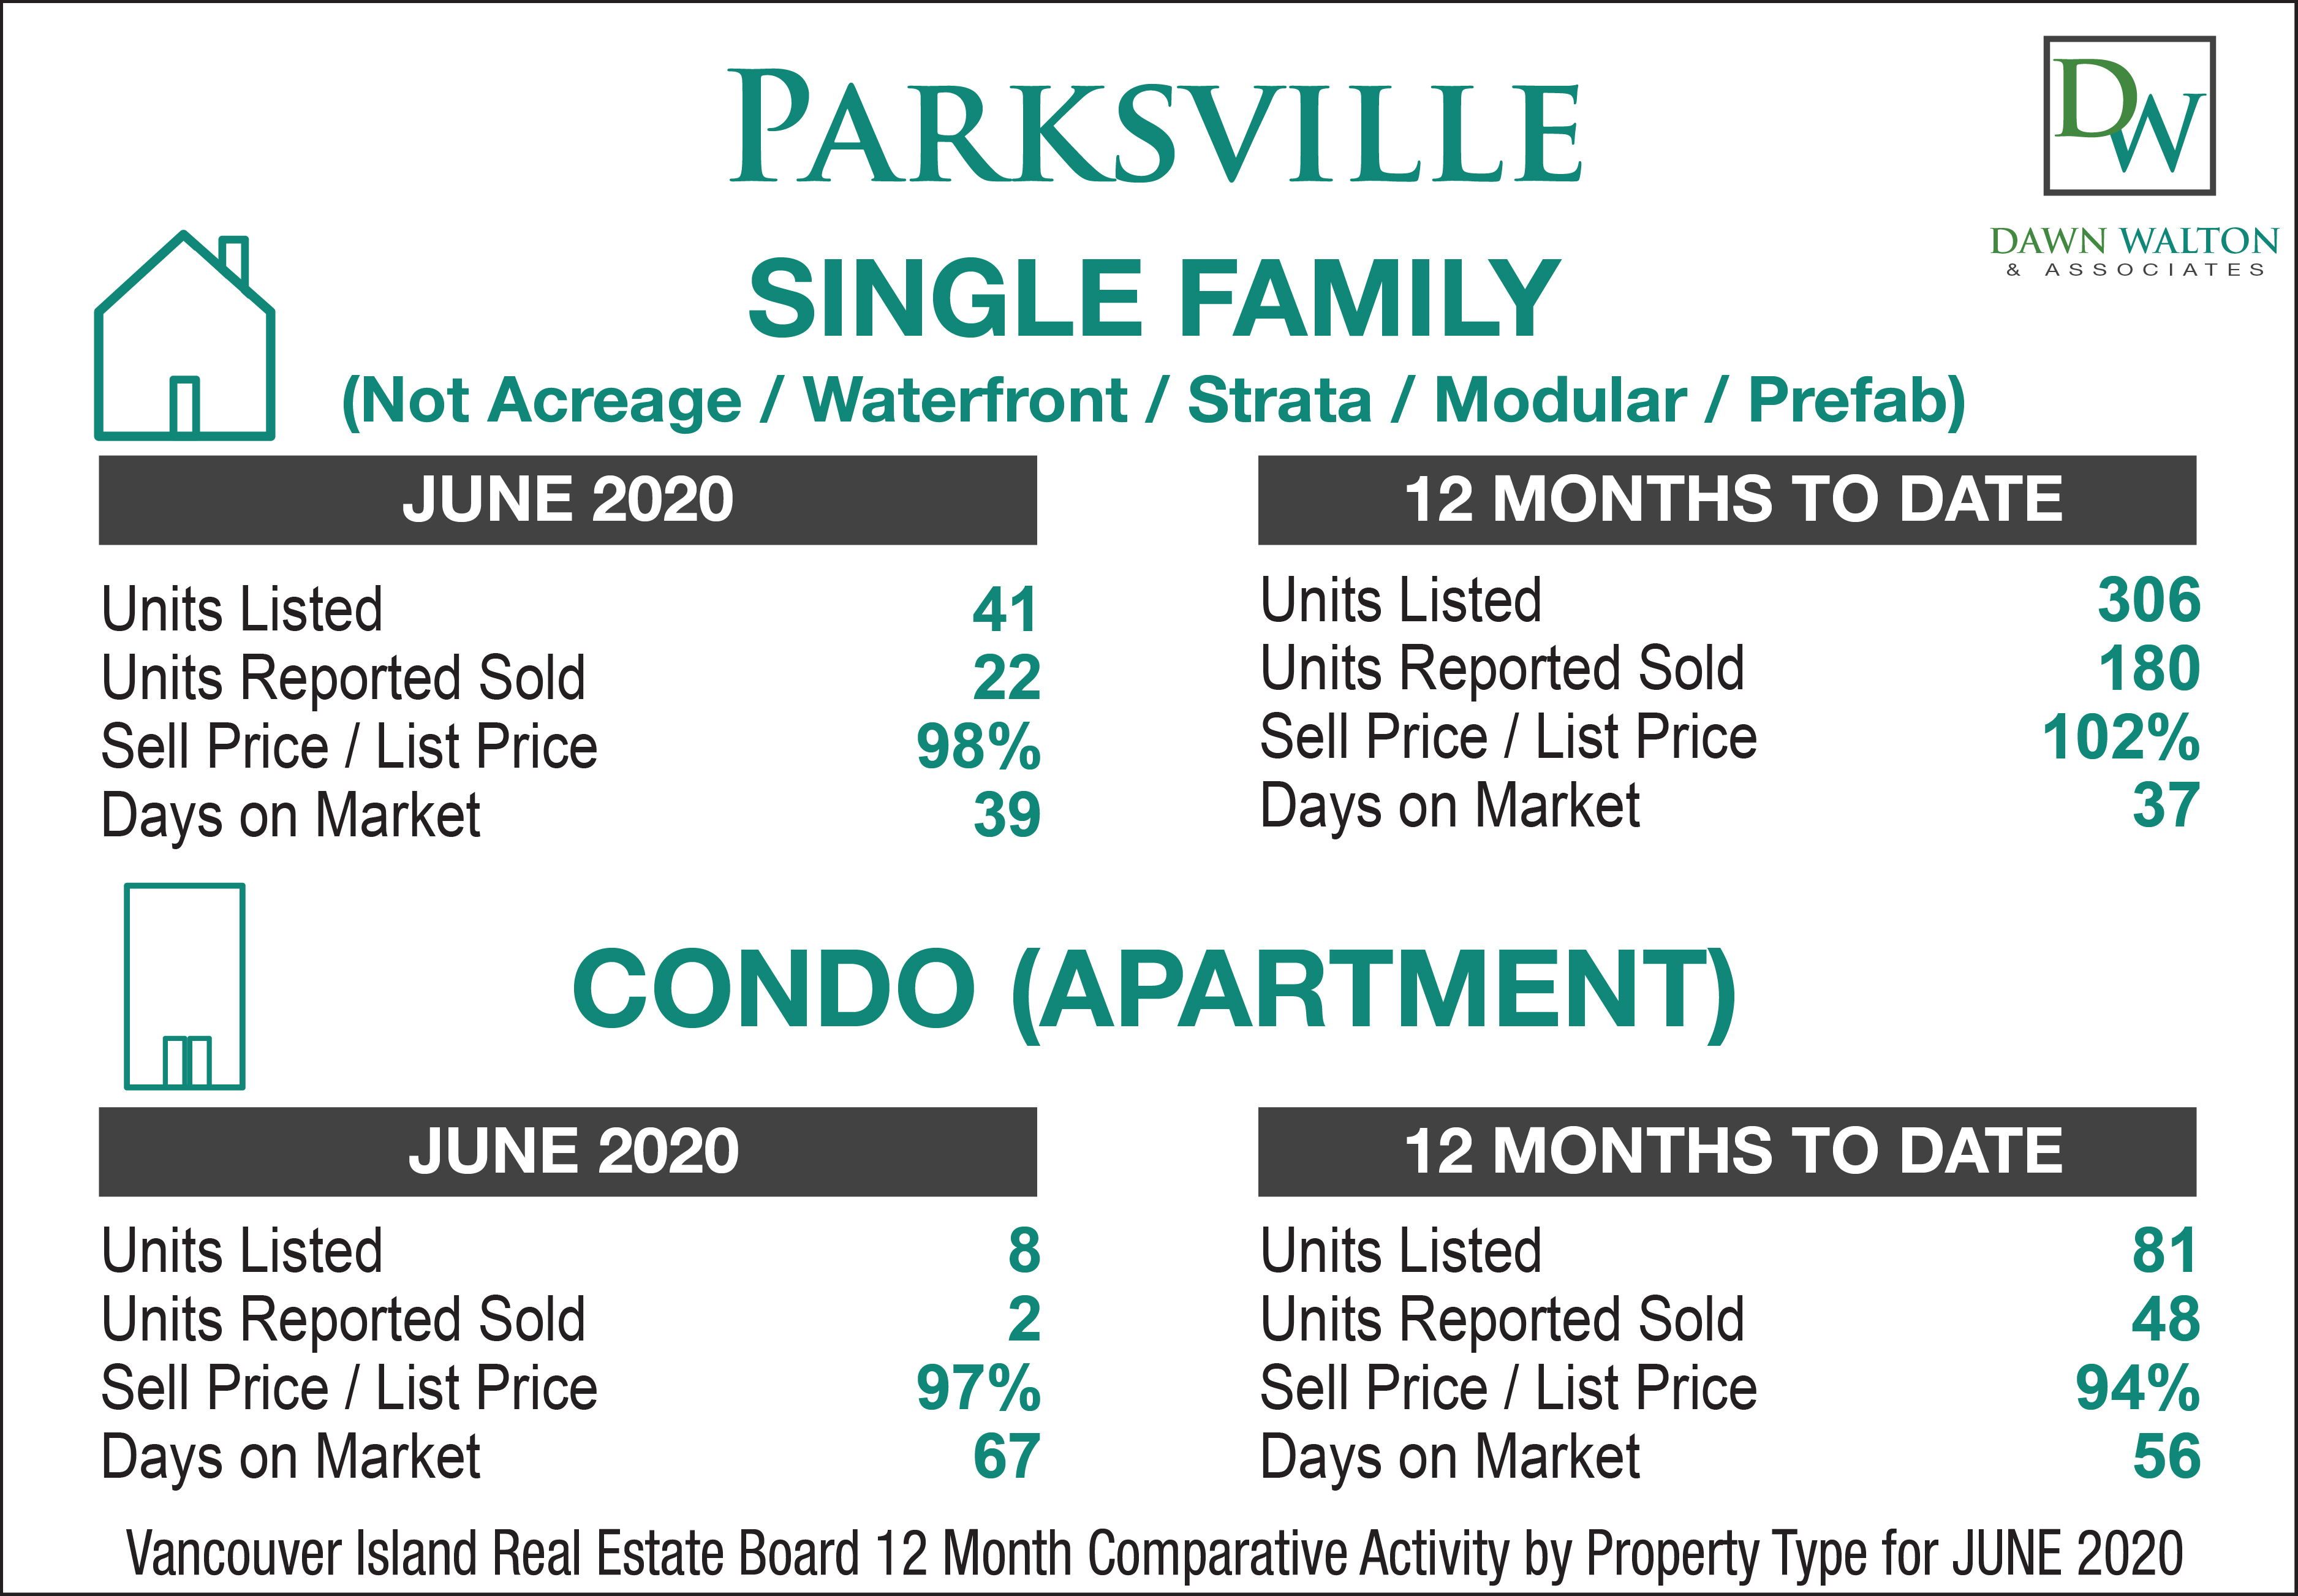 Parksville Real Estate Market Stats June 2020 - Nanaimo Realtor Dawn Walton